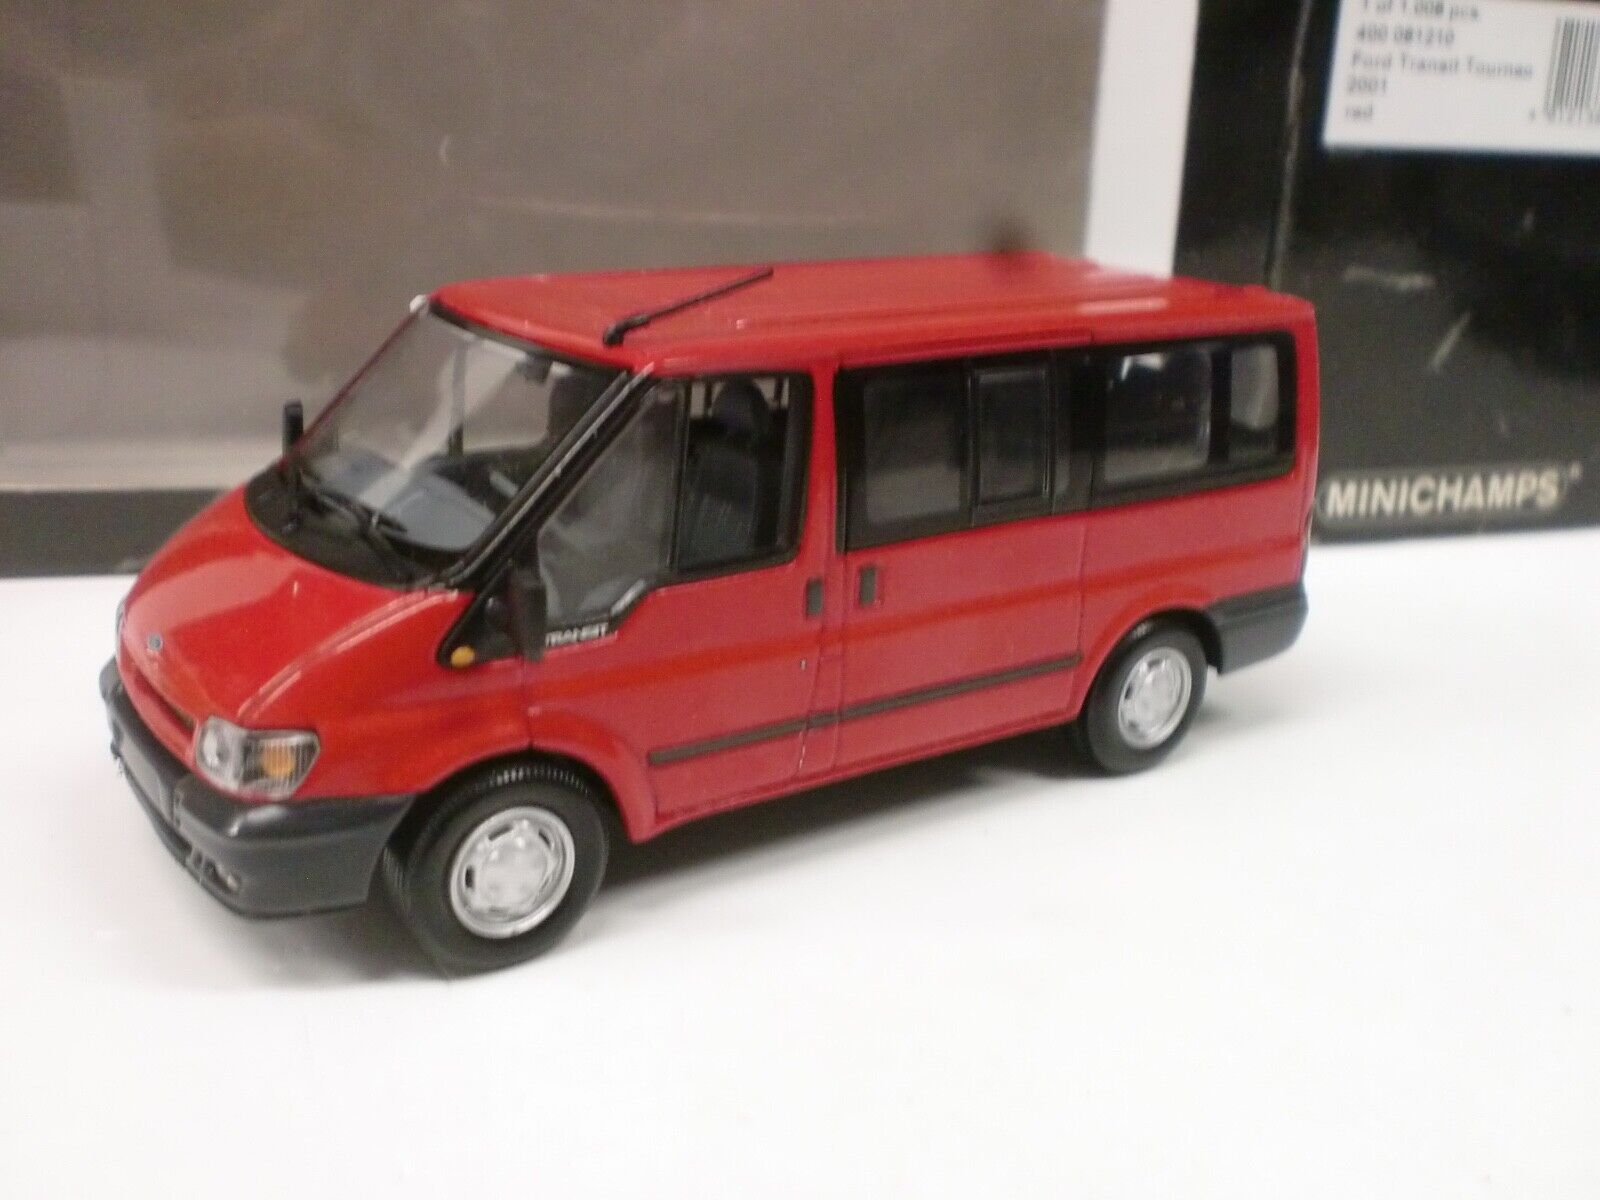 MINICHAMPS 1 43 - FORD TRANSIT TOURNEO 2001  - 400 081210